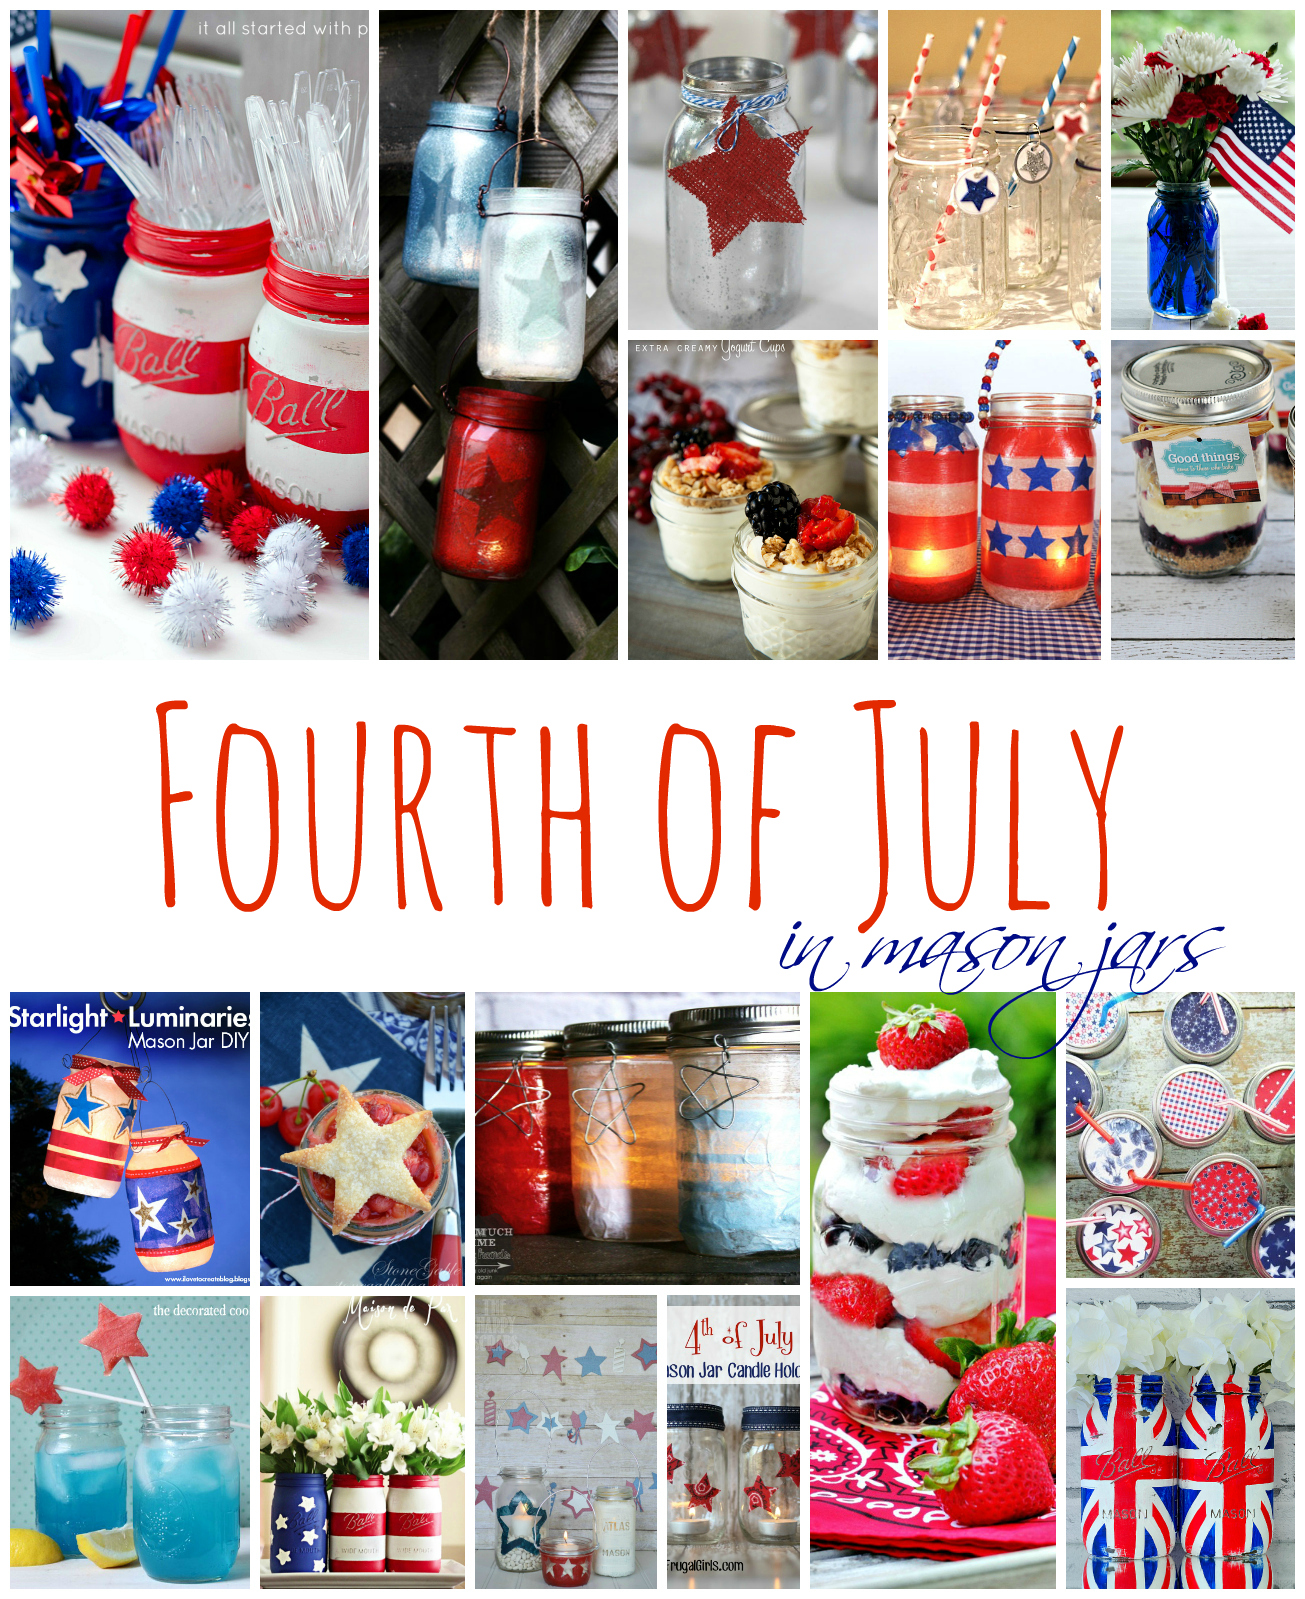 Crafts With Mason Jars Stars Stripes Mason Jars Mason Jar Crafts Love